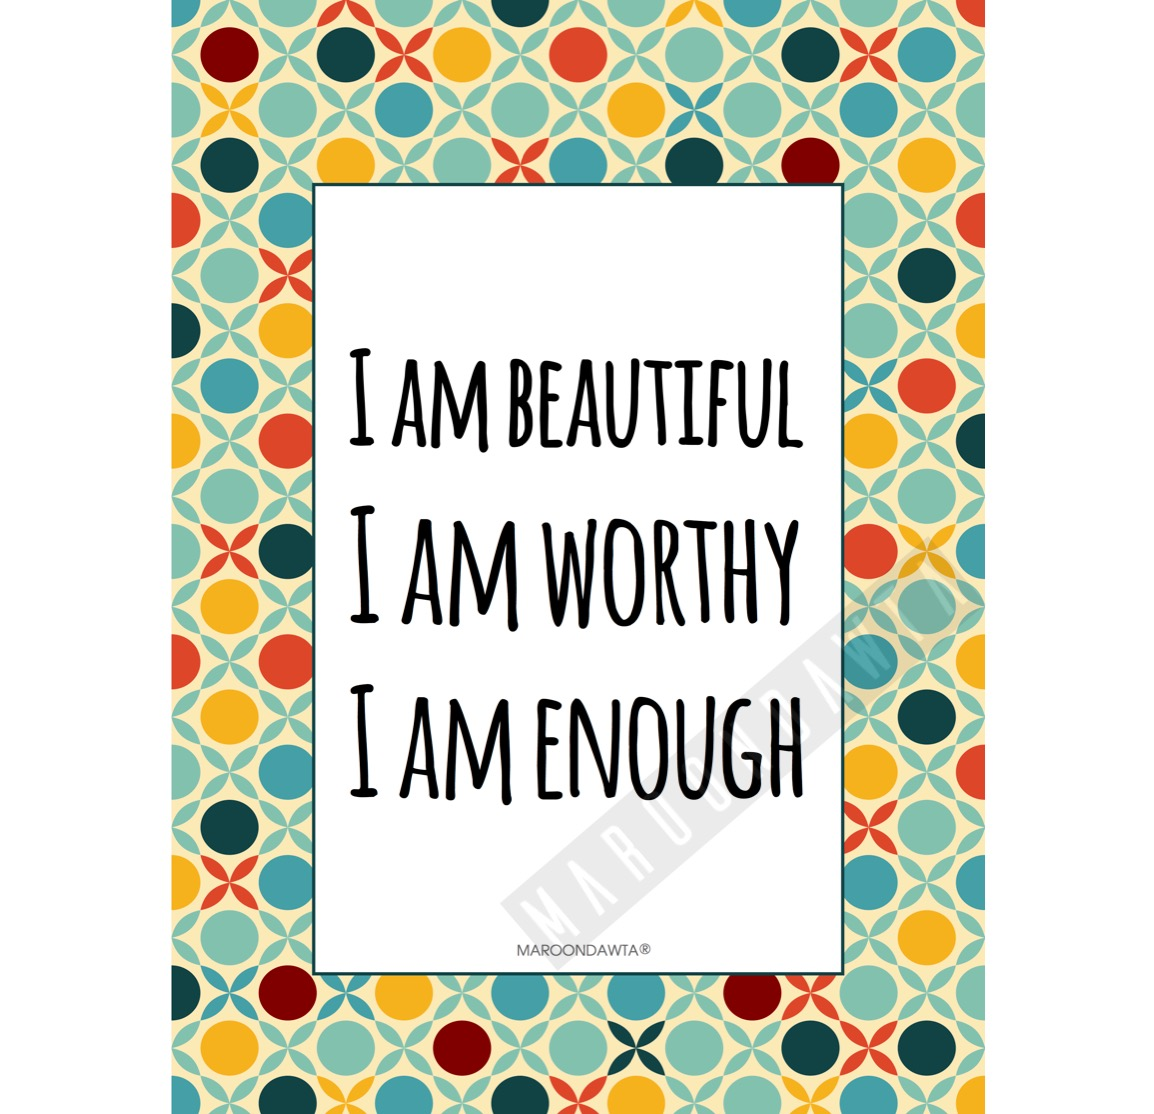 I Am Beautiful. I Am Worthy. I Am Enough.